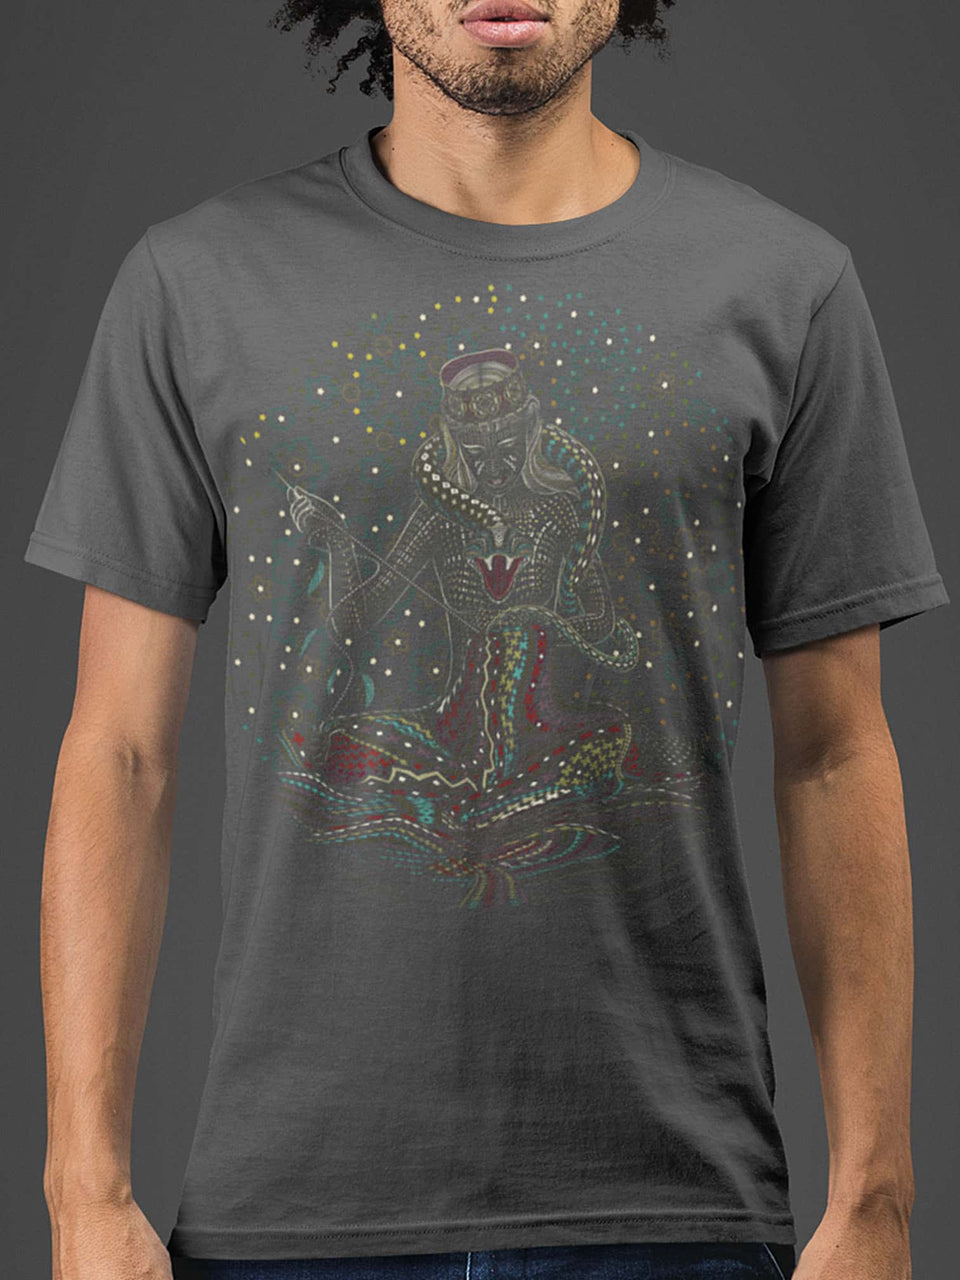 Song Weaving Made To Order Men T-Shirt - Light Charcoal